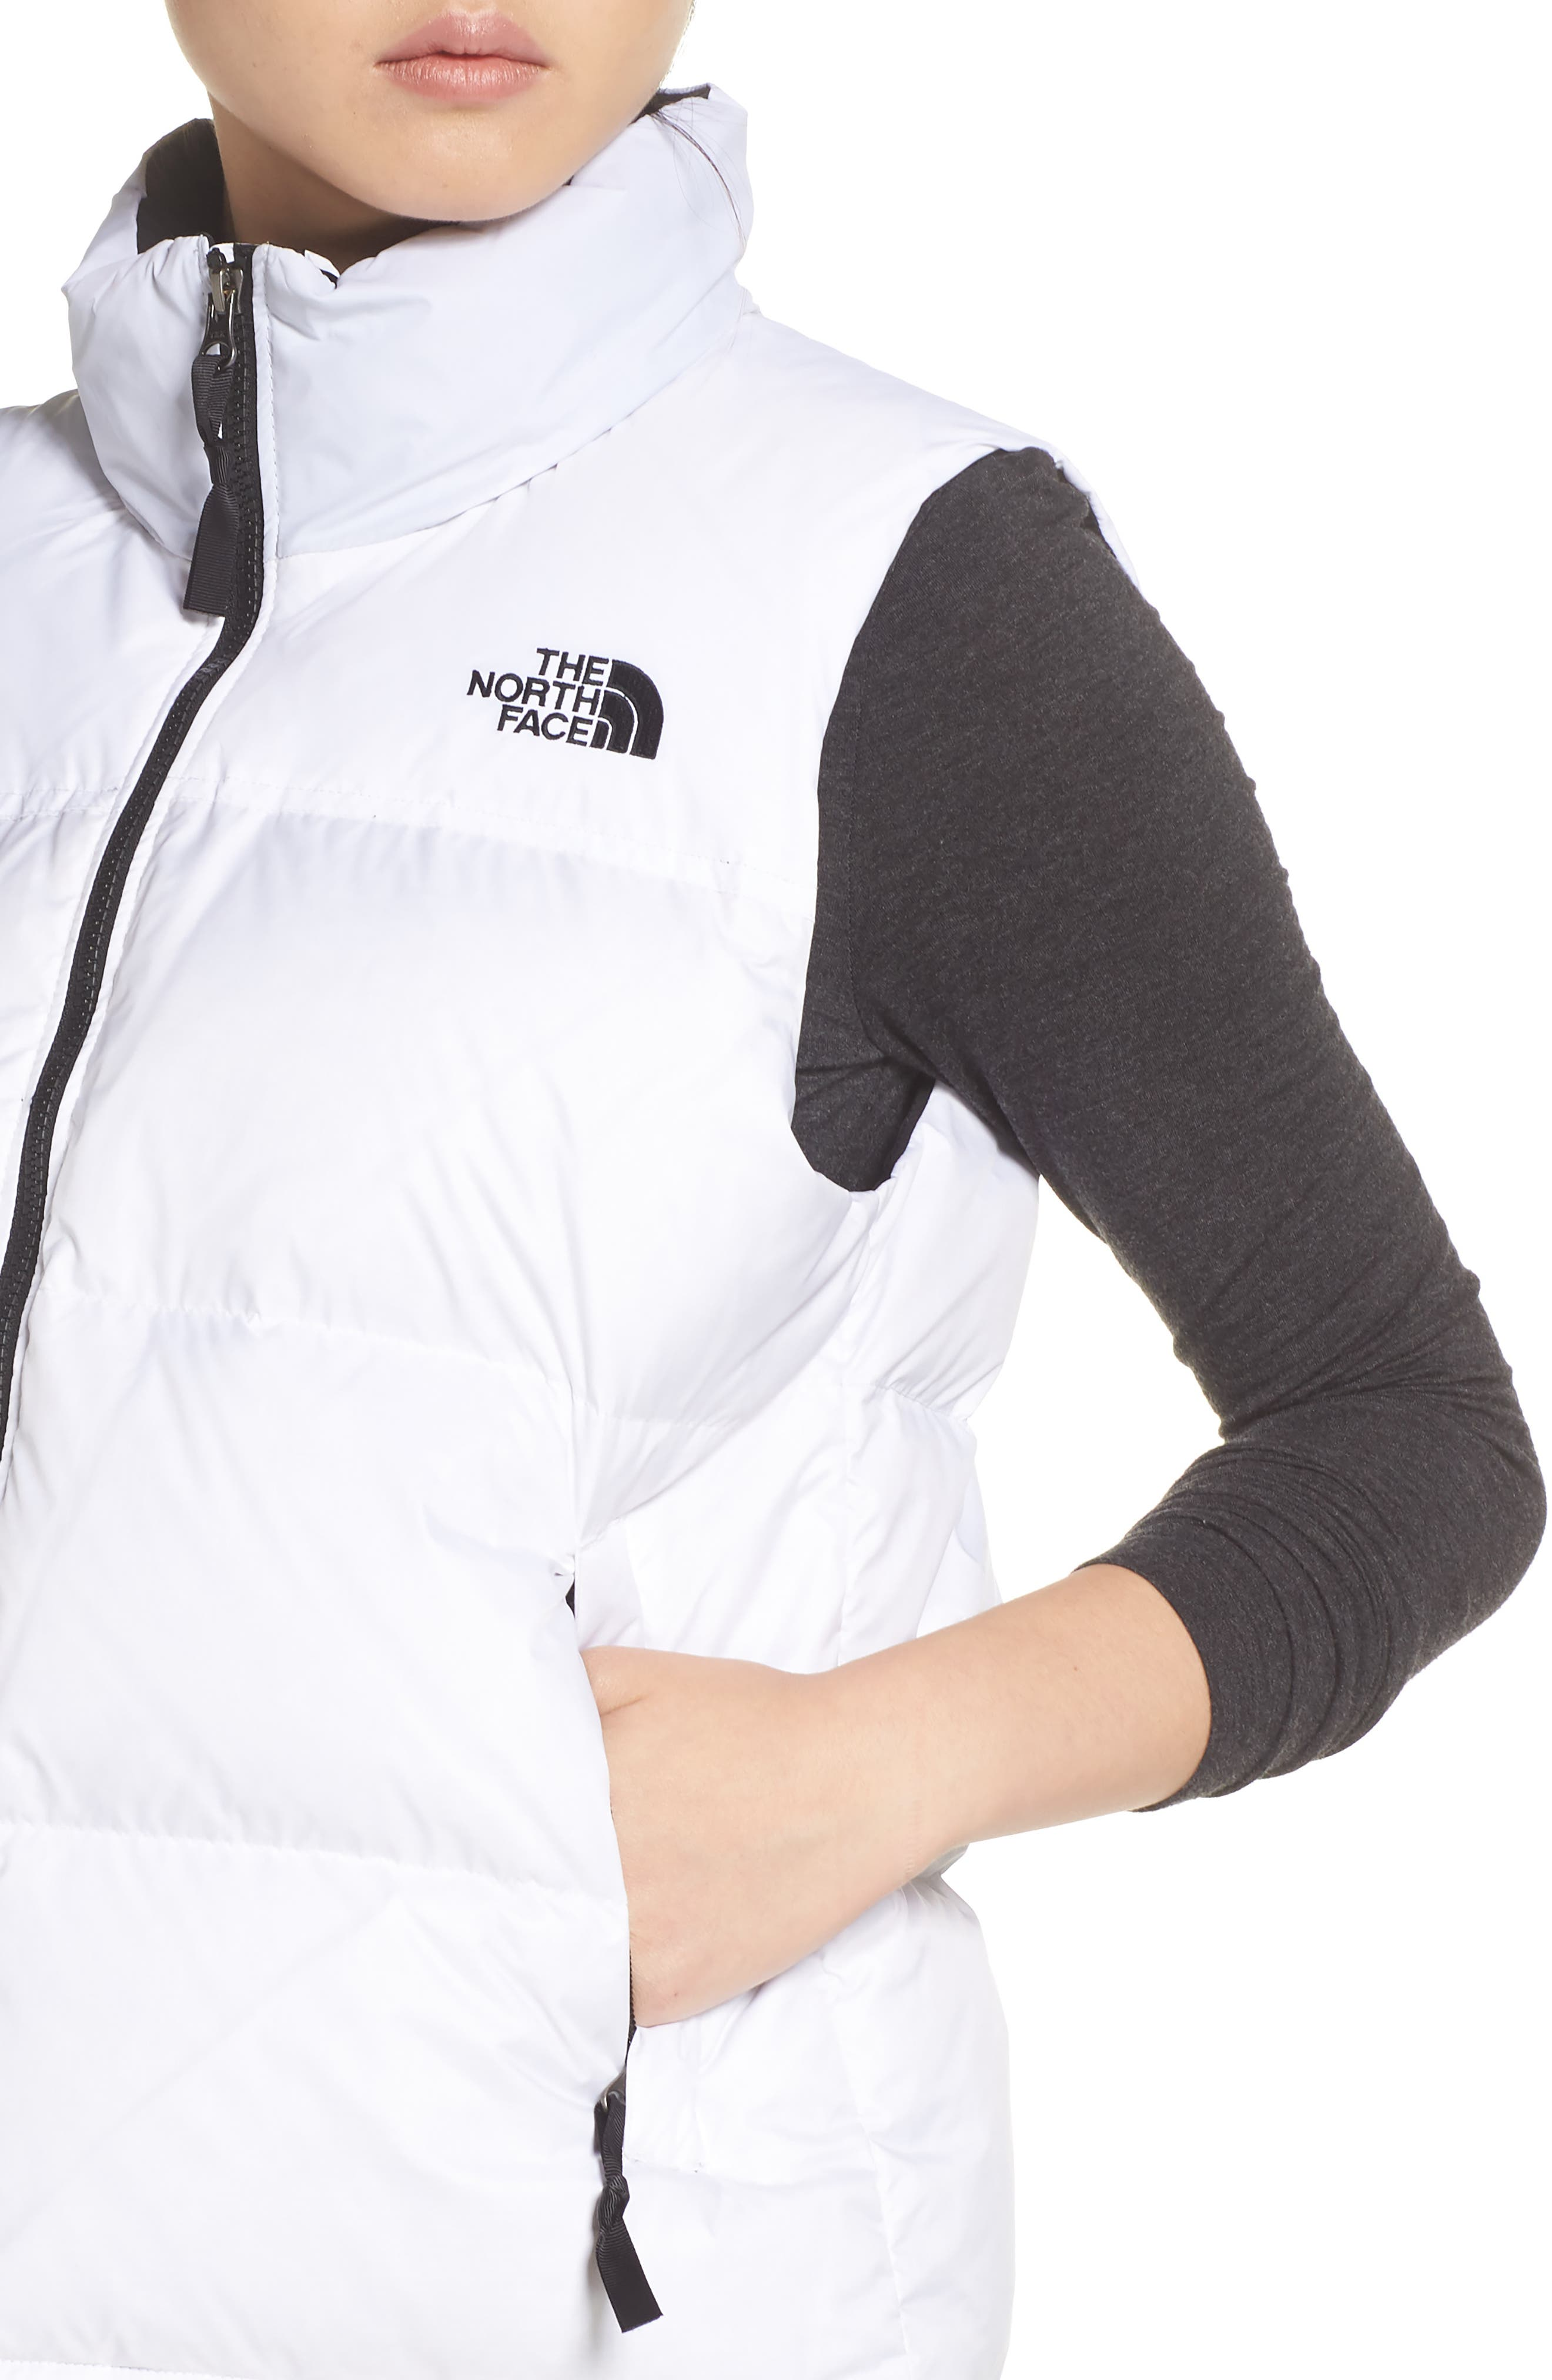 THE NORTH FACE,                             Nuptse 1996 Packable 700-Fill Power Down Vest,                             Alternate thumbnail 5, color,                             TNF WHITE